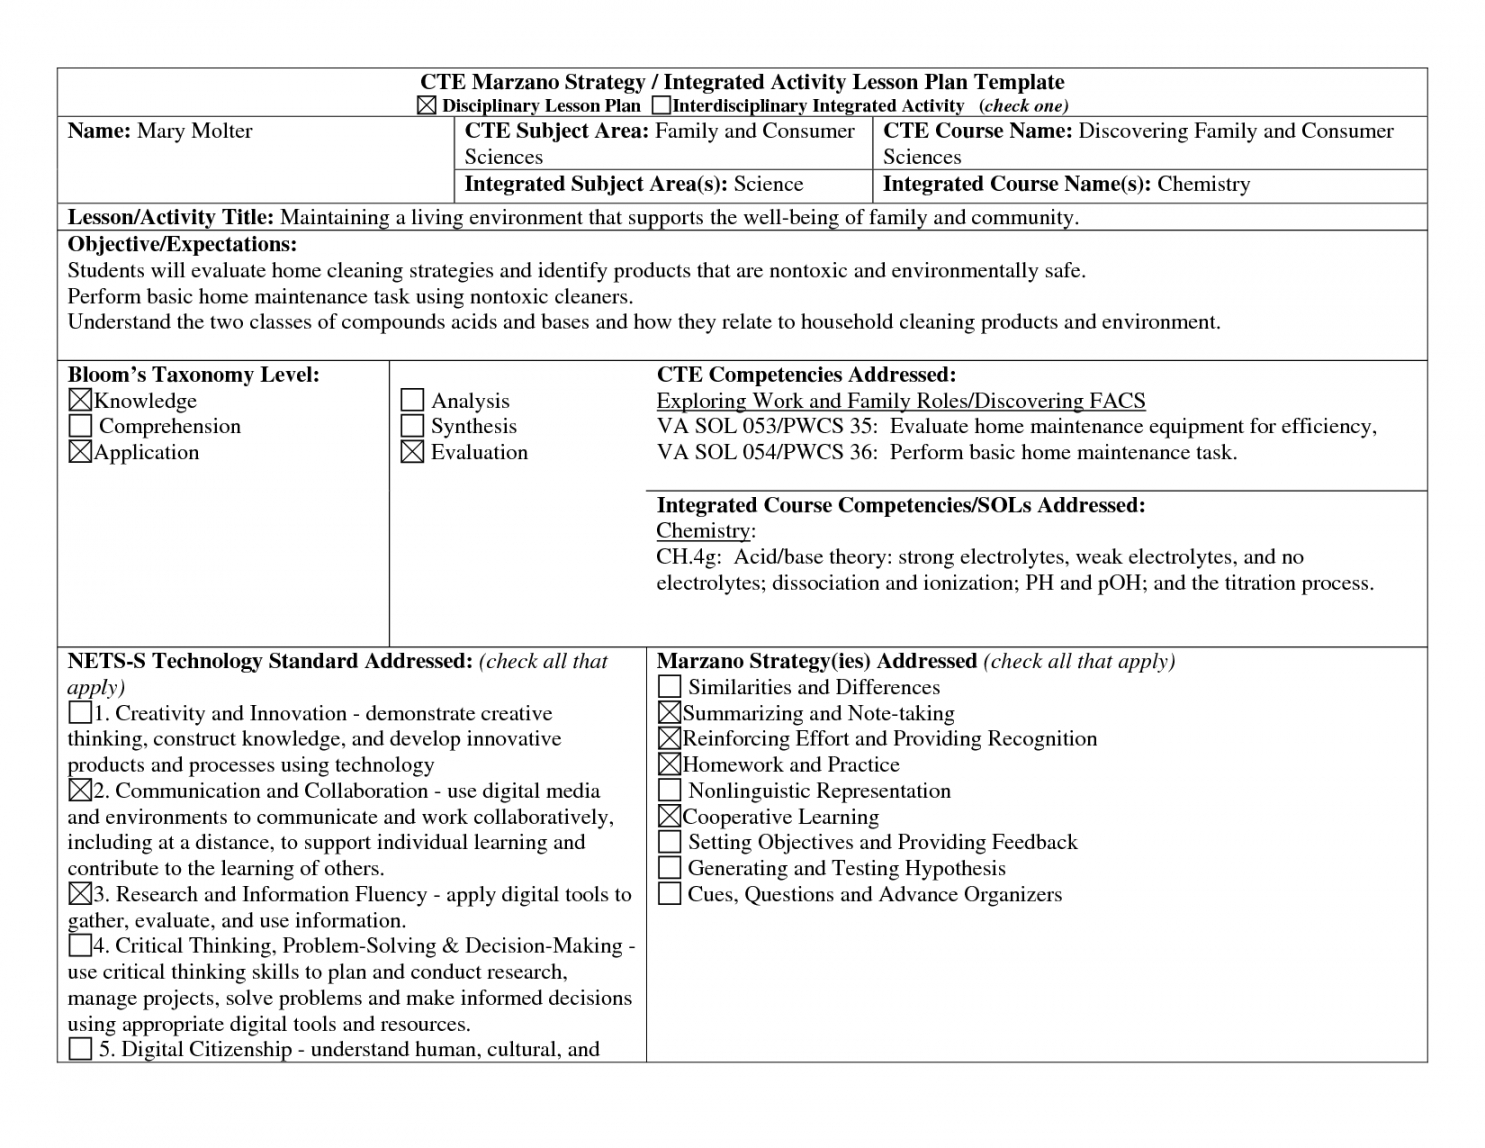 011 cte lesson plan template exceptional templates mathincte task analysis lesson plan template example